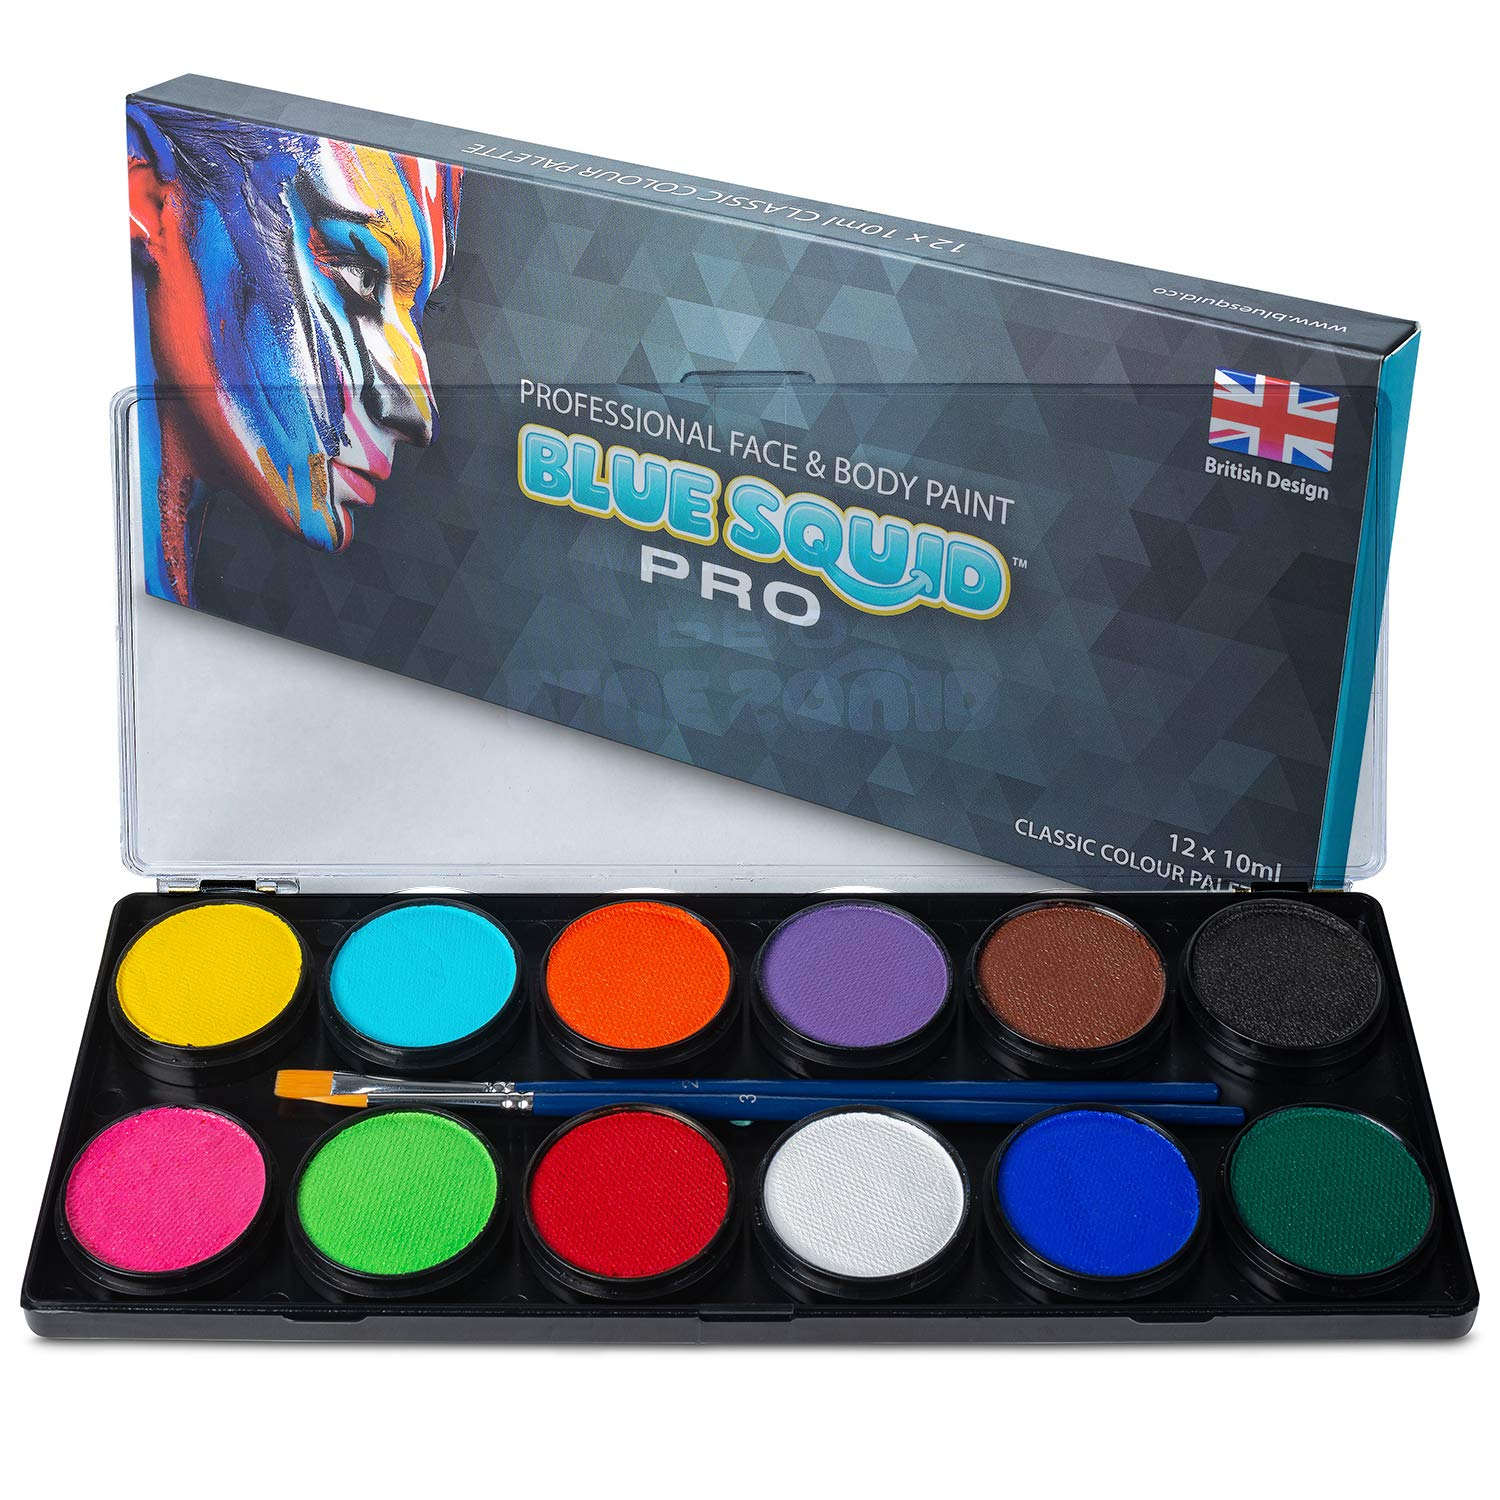 Professional Face Paint Kit - by Blue Squid PRO, 12x10g Classic Color Palette, 𝗡𝗘𝗪 Professional Face & Body Painting Supplies SFX, Adult & Kids, Superior Safe Paint for Sensitive Skin Halloween